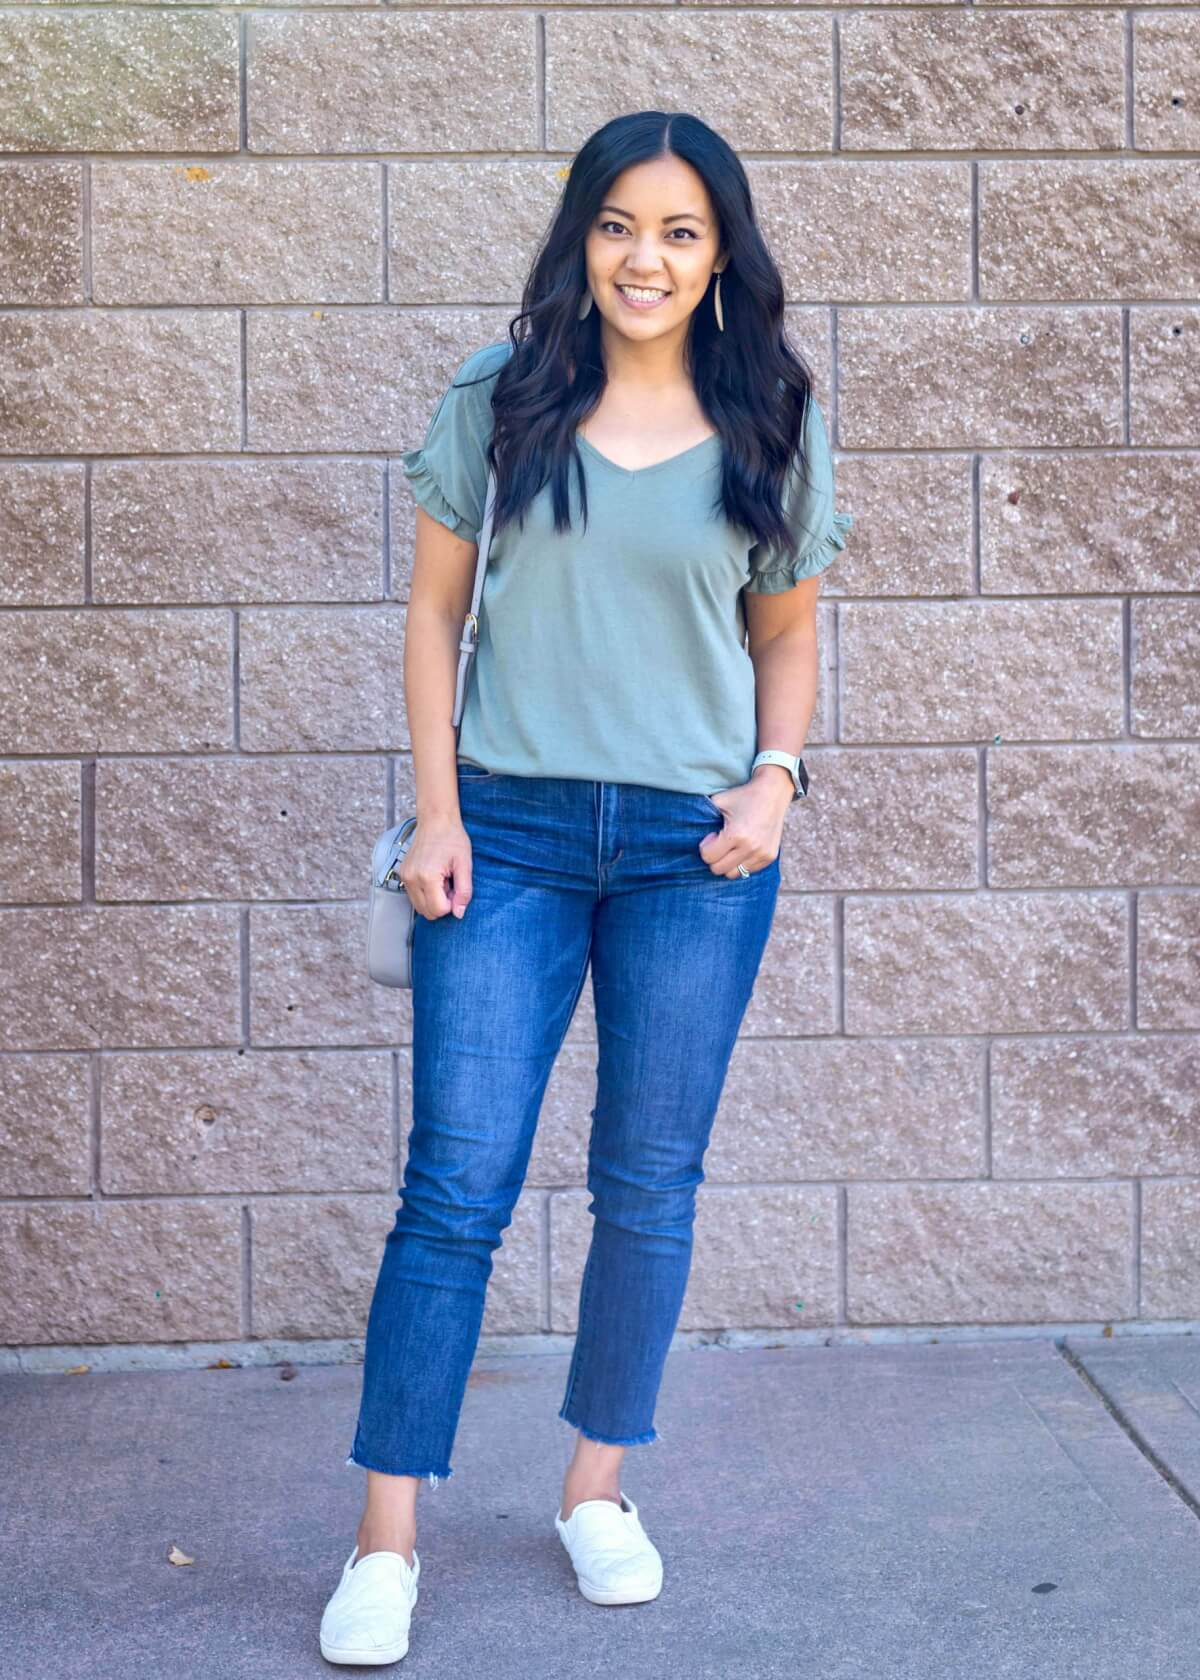 Casual Fall Outfit: sage green flutter sleeve tee + blue skinny crop jeans + white slip-on sneakers + white earrings + gray crossbody bag